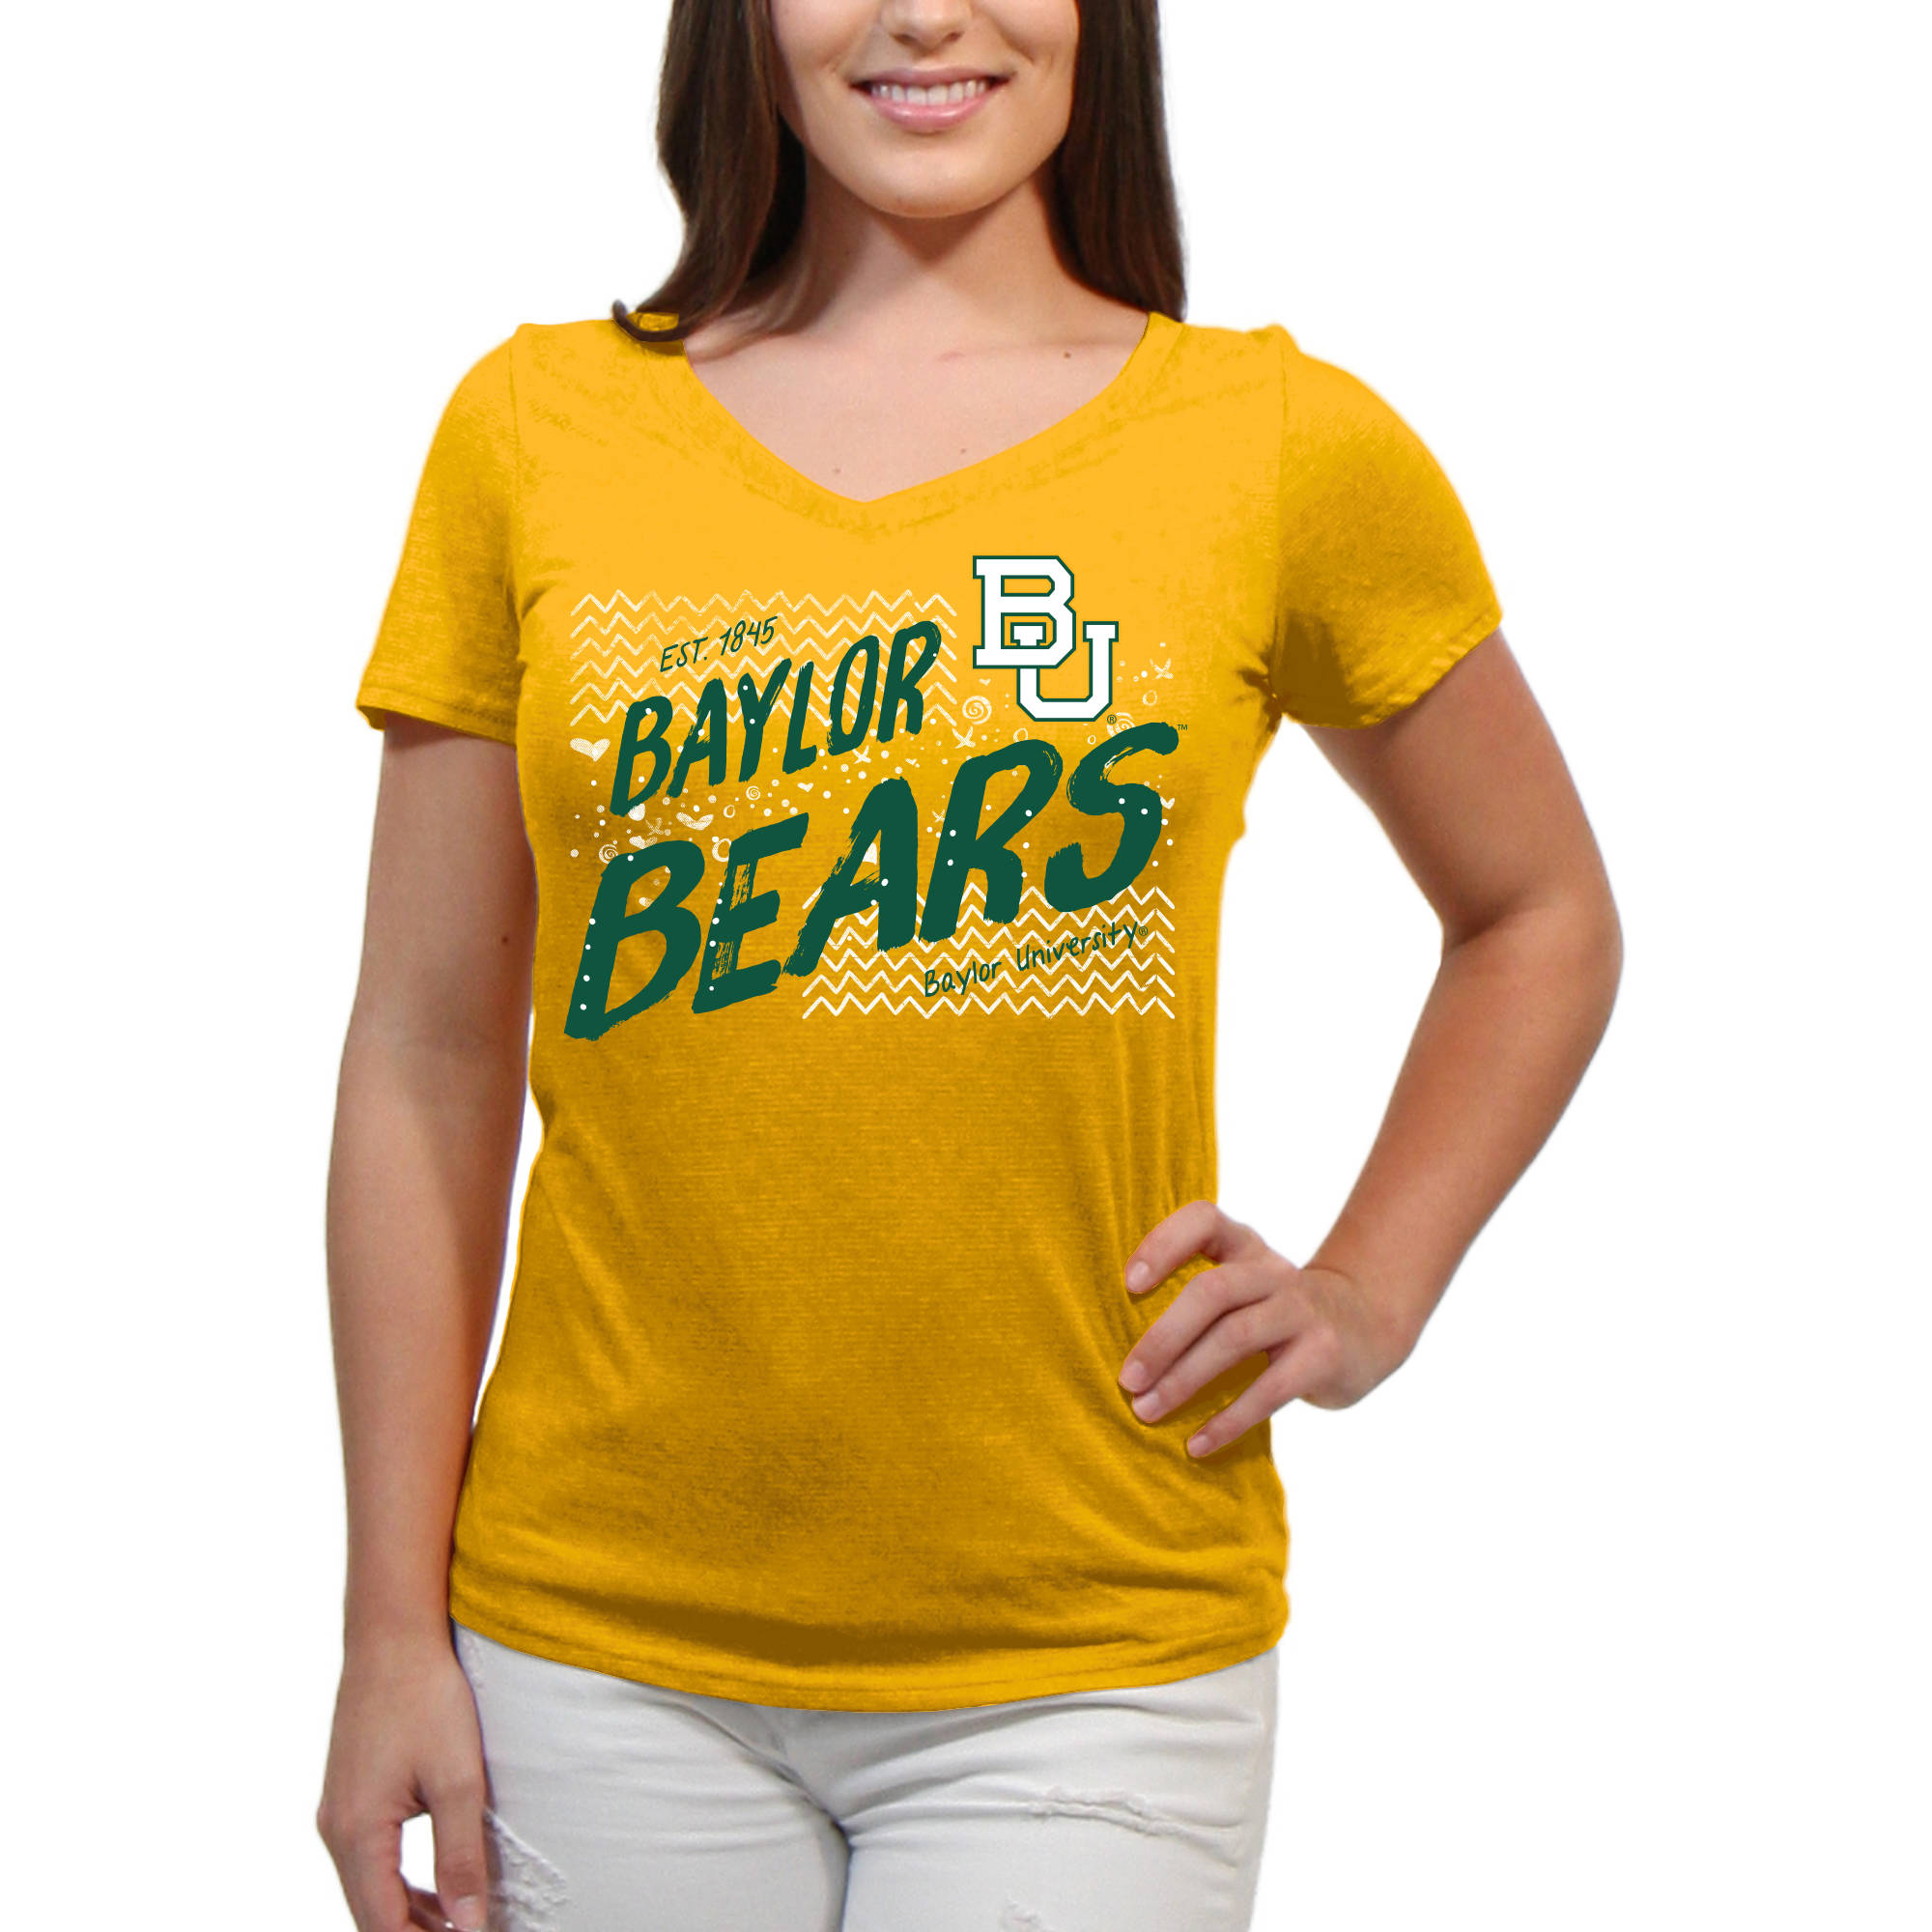 Baylor Bears Scatter Doodle Women'S/Juniors Team Short Sleeve V Neck Tee Shirt